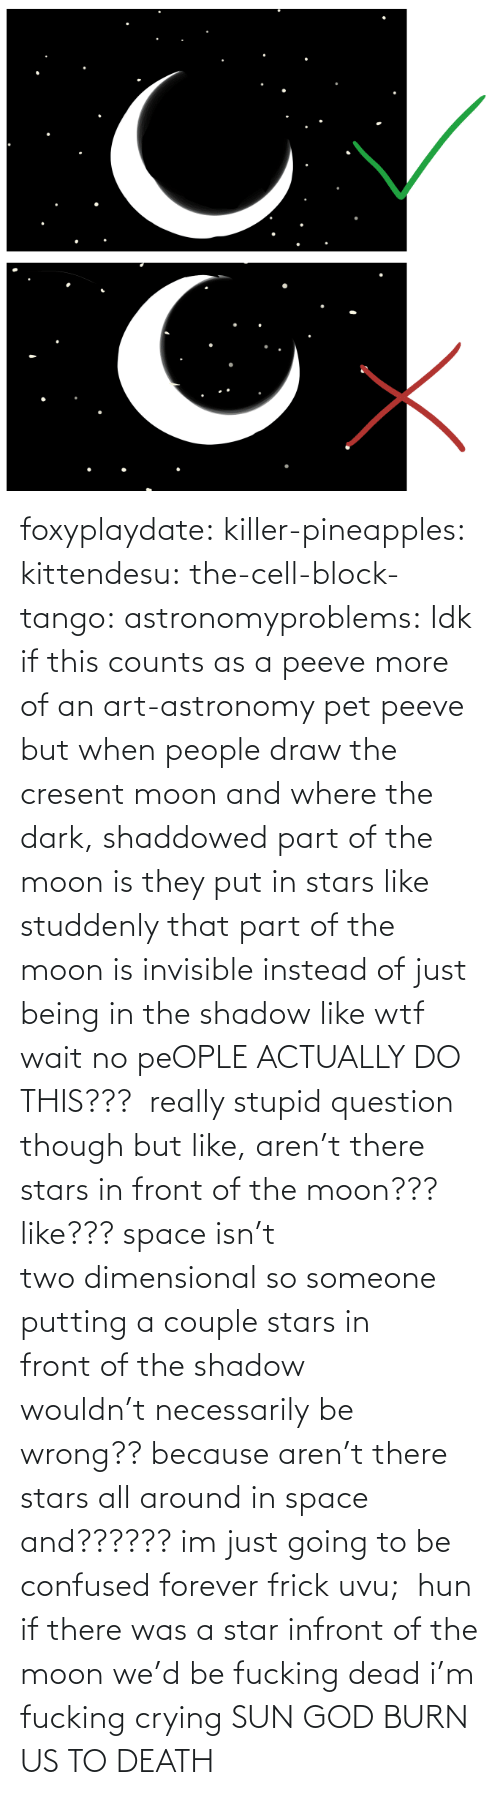 Moon: foxyplaydate: killer-pineapples:  kittendesu:  the-cell-block-tango:  astronomyproblems:  Idk if this counts as a peeve more of an art-astronomy pet peeve but when people draw the cresent moon and where the dark, shaddowed part of the moon is they put in stars like studdenly that part of the moon is invisible instead of just being in the shadow like wtf  wait no peOPLE ACTUALLY DO THIS???   really stupid question though but like, aren't there stars in front of the moon??? like??? space isn't two dimensional so someone putting a couple stars in front of the shadow wouldn't necessarily be wrong?? because aren't there stars all around in space and?????? im just going to be confused forever frick uvu;   hun if there was a star infront of the moon we'd be fucking dead  i'm fucking crying    SUN GOD BURN US TO DEATH